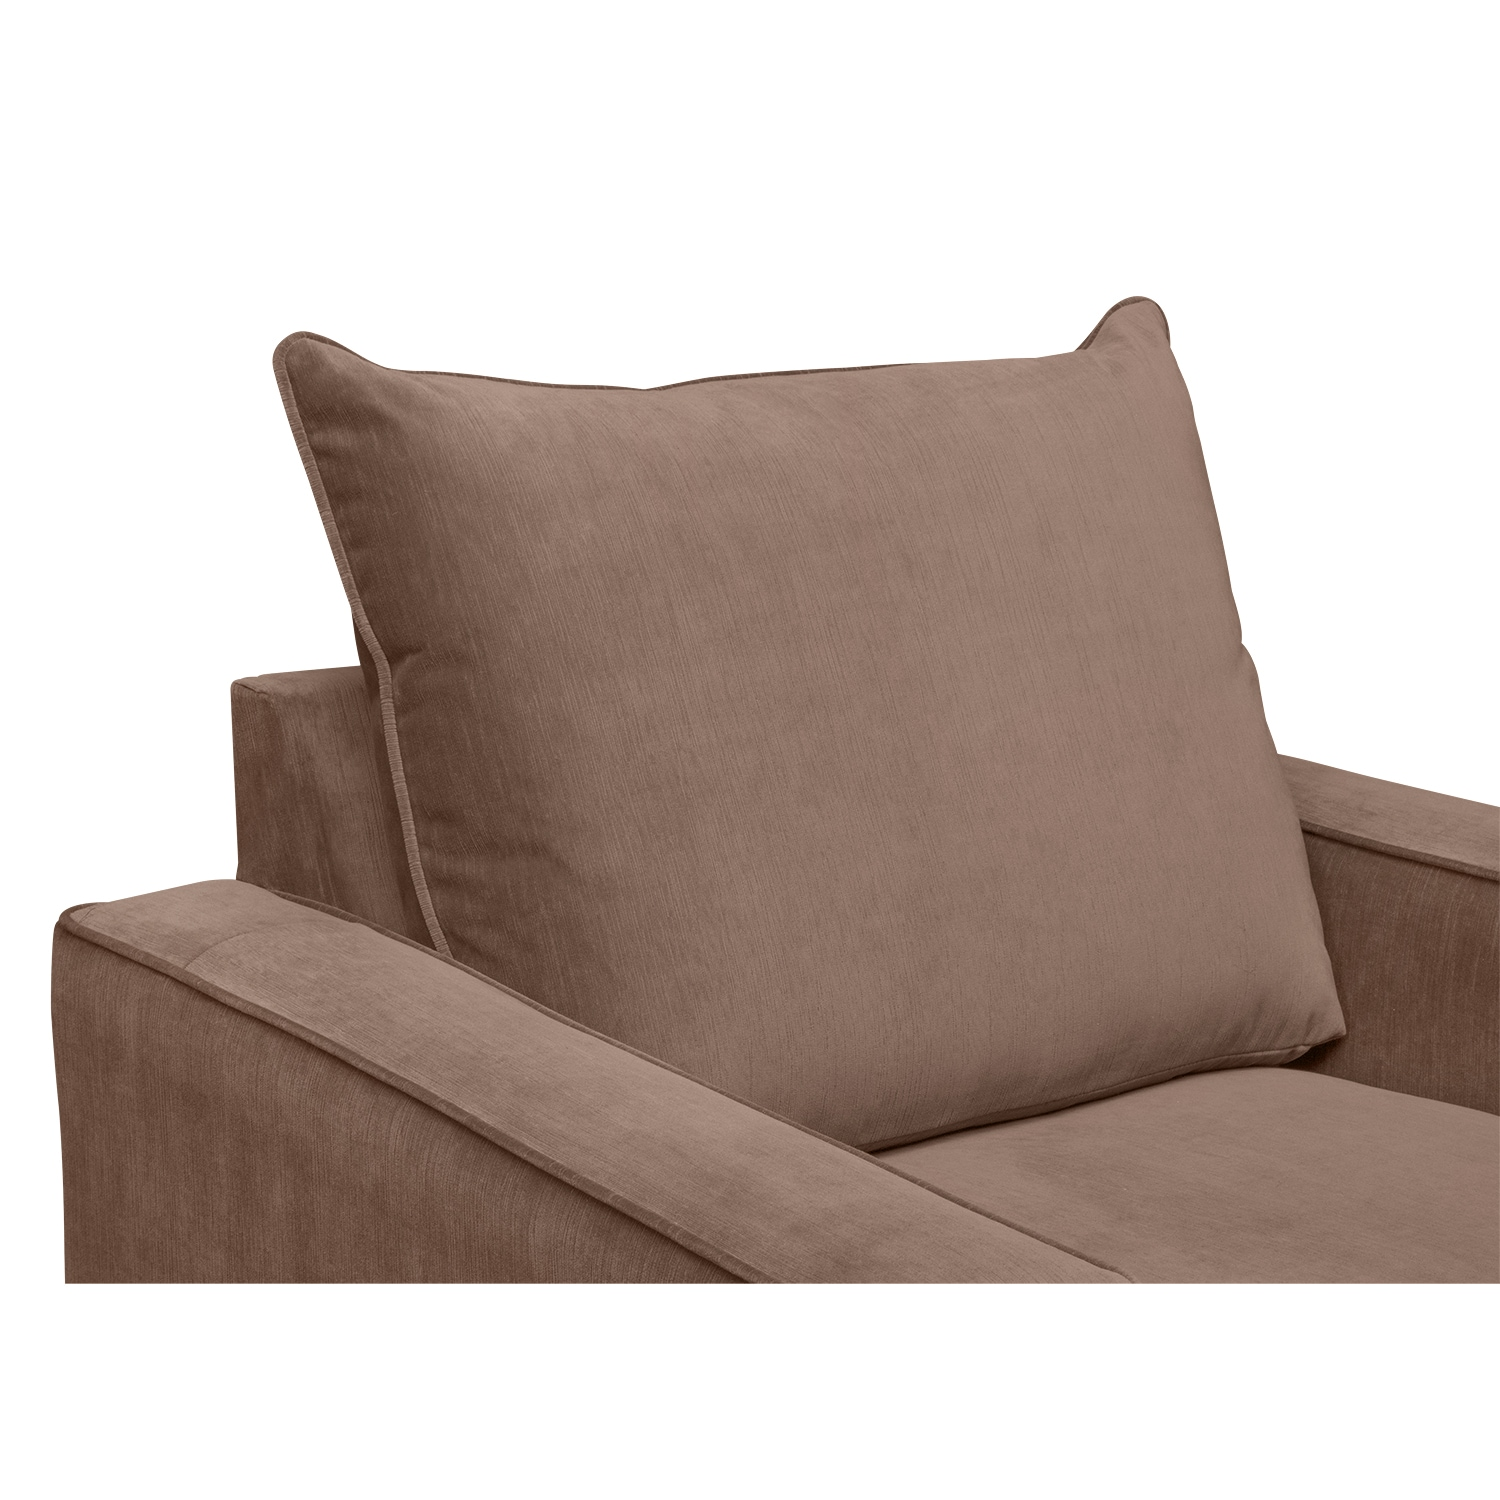 Bryden Sofa Loveseat and Chair Set Chocolate